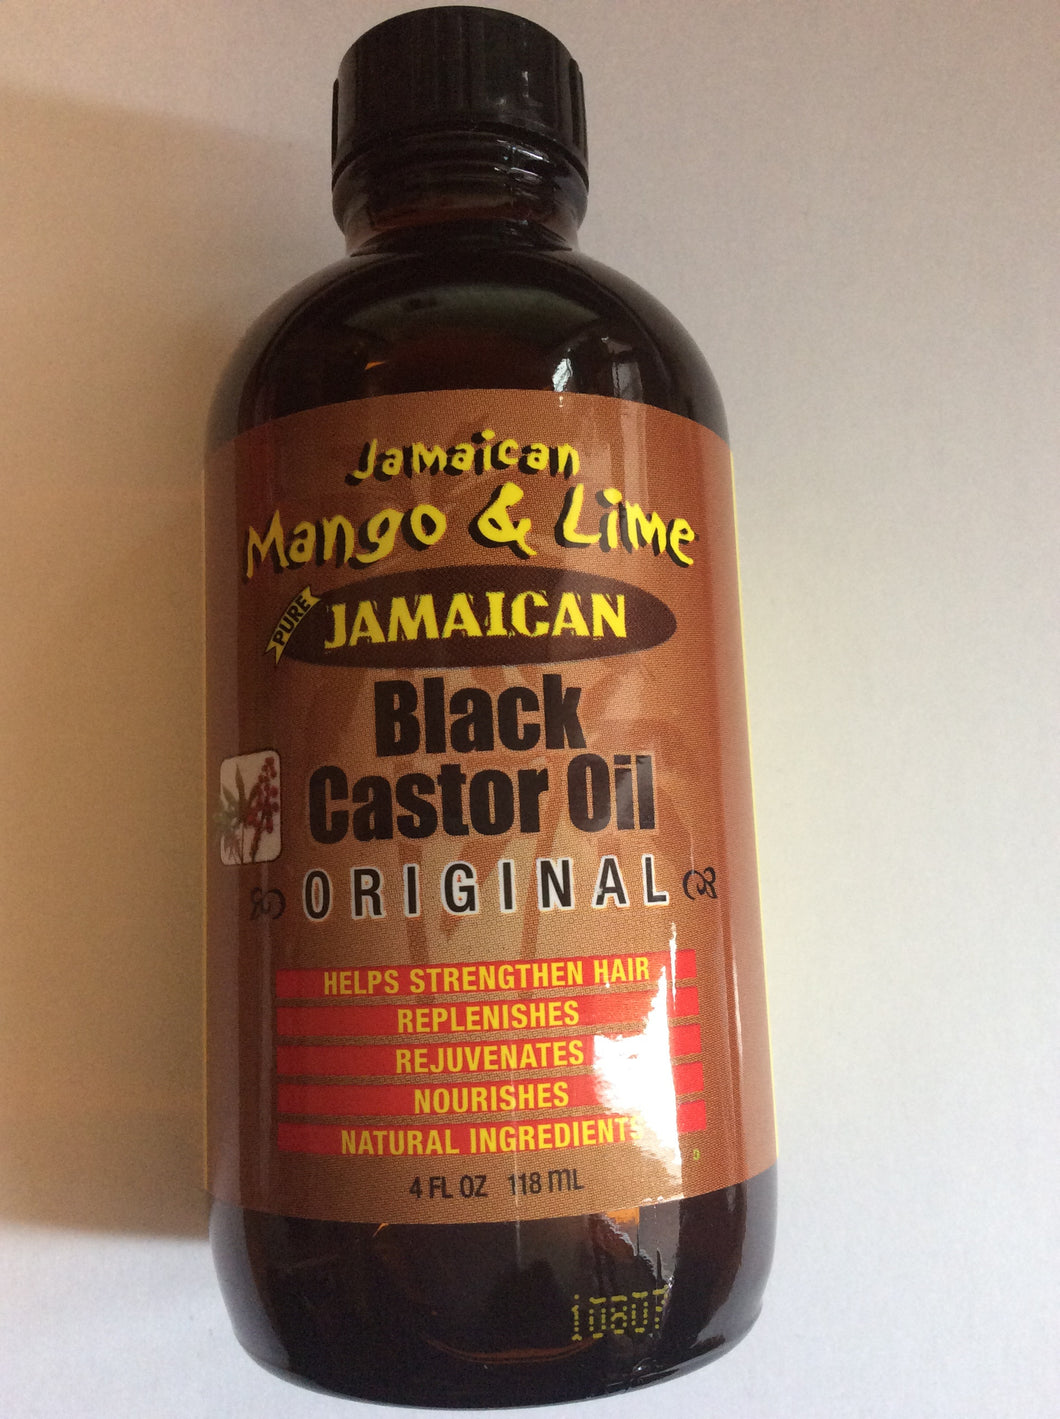 Jamaican Mango & Lime Black Castor Oil